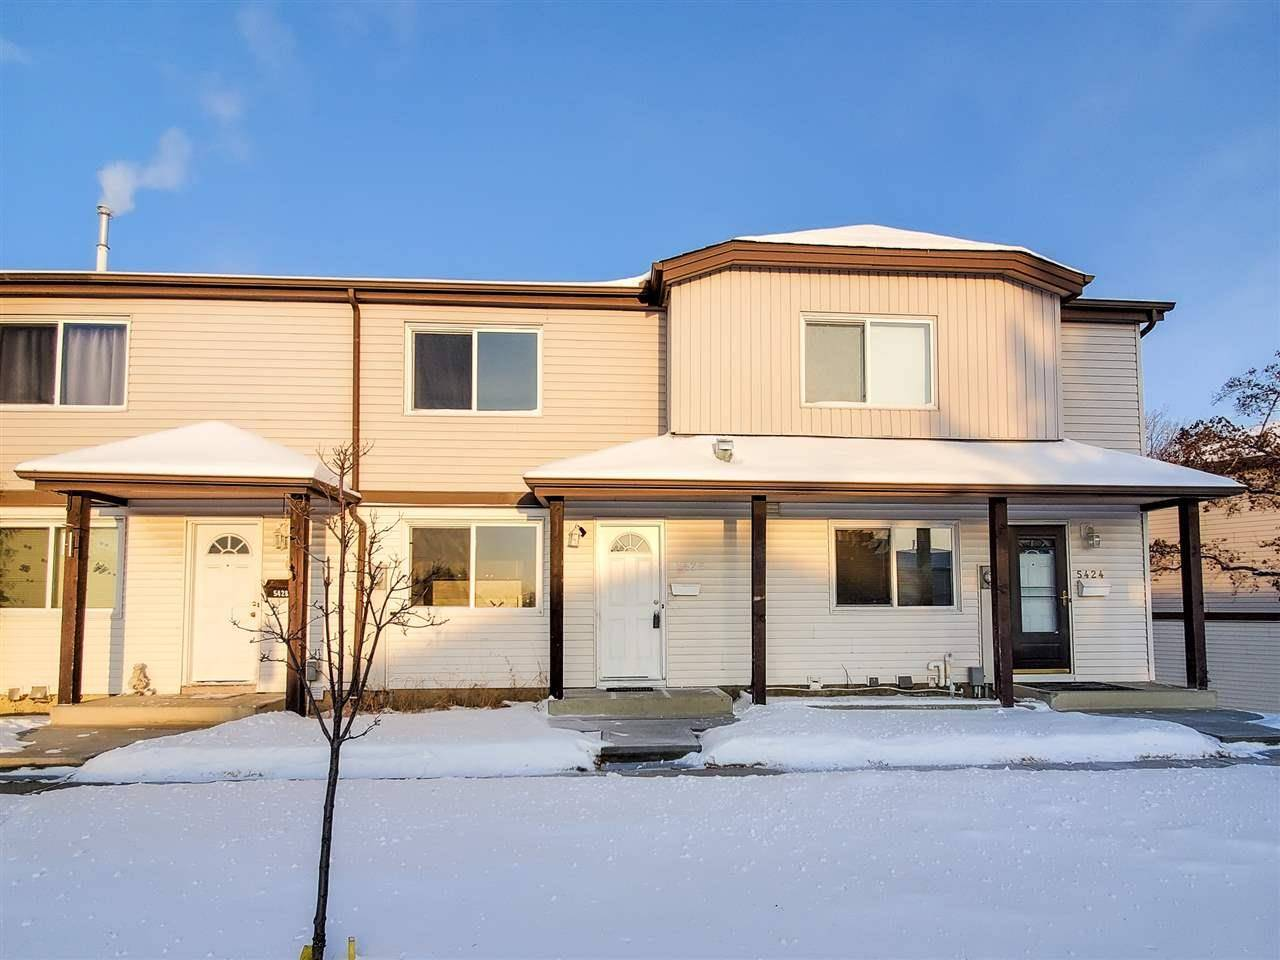 Townhouse for sale at 5426 146 Ave Nw Edmonton Alberta - MLS: E4183887